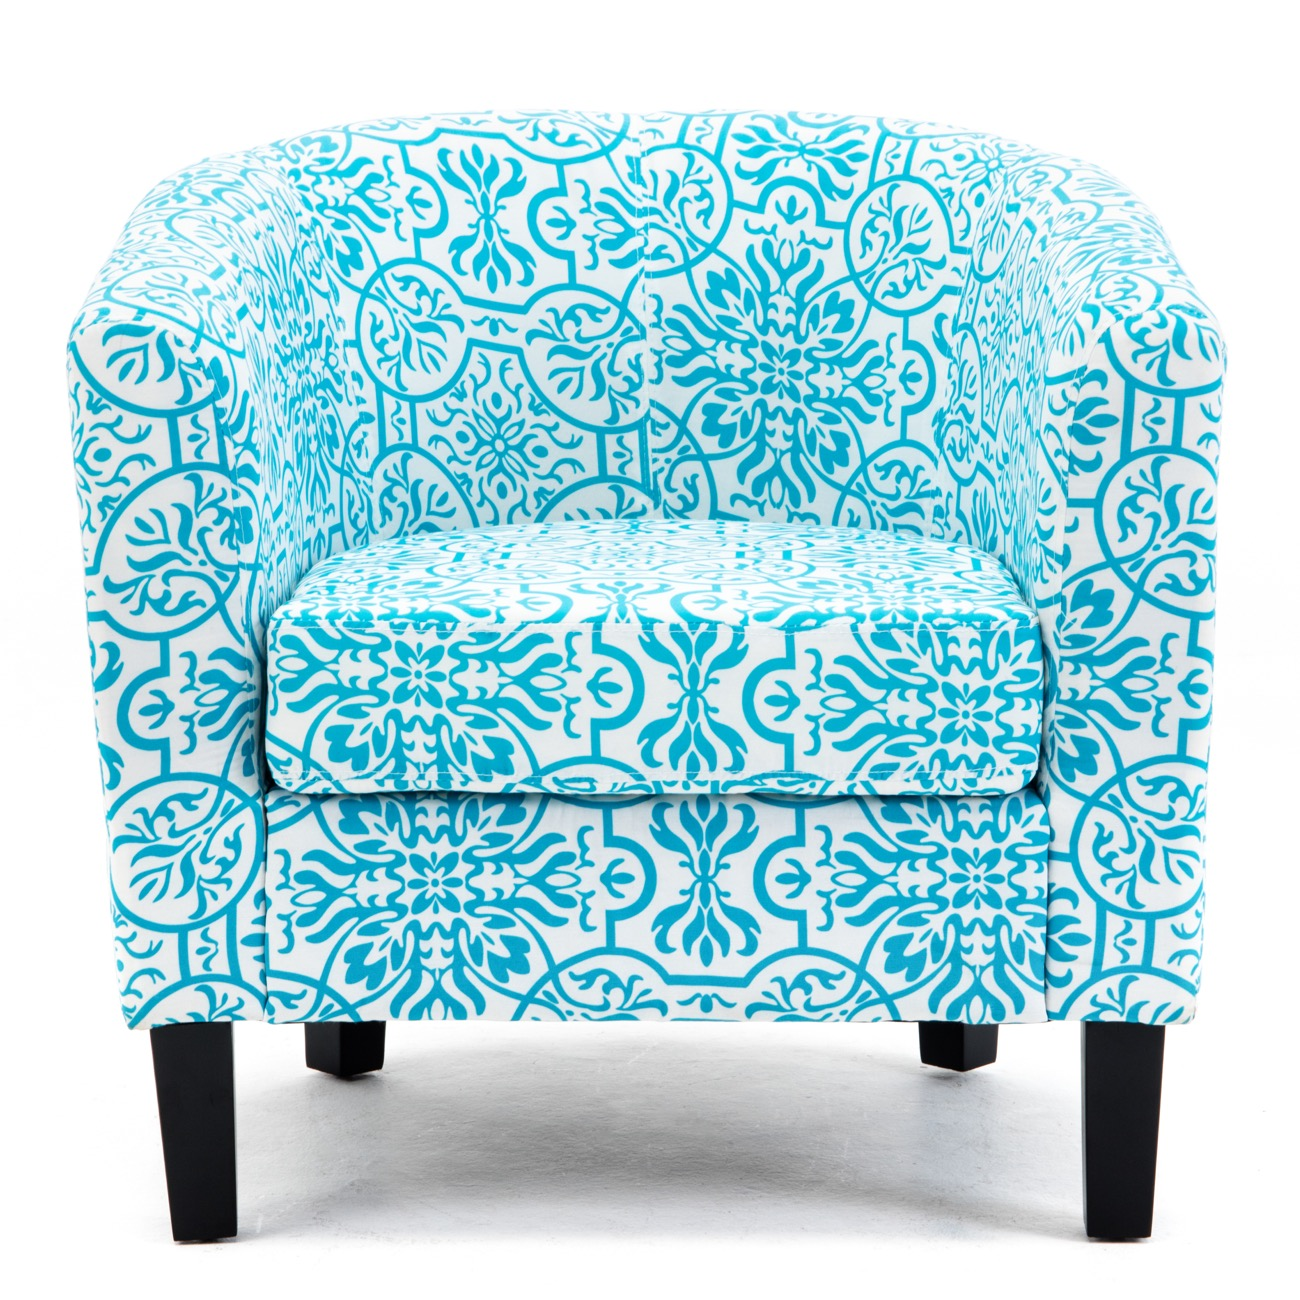 Sensational Details About Accent Barrel Chair W Ottoman Round Arms Curved Back French Print Script Caraccident5 Cool Chair Designs And Ideas Caraccident5Info